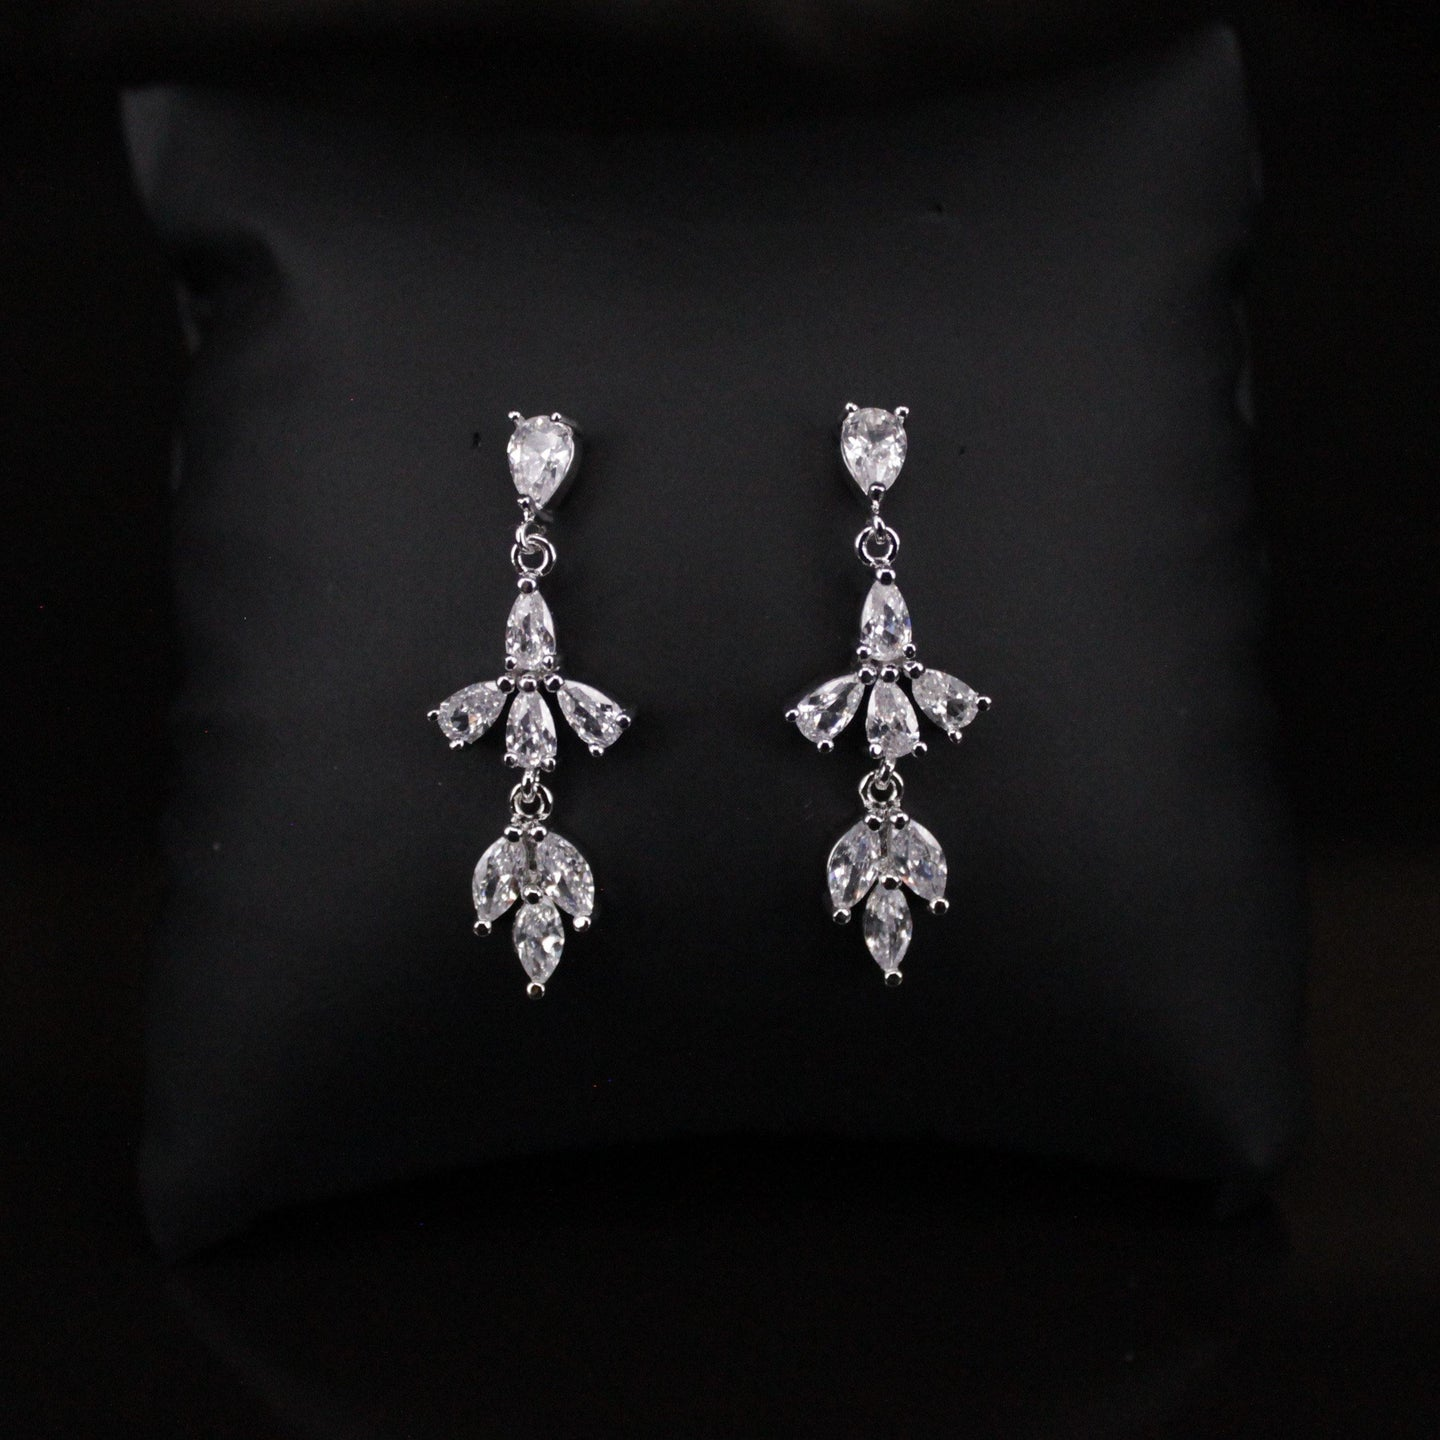 Amanda - Earrings - Trestina